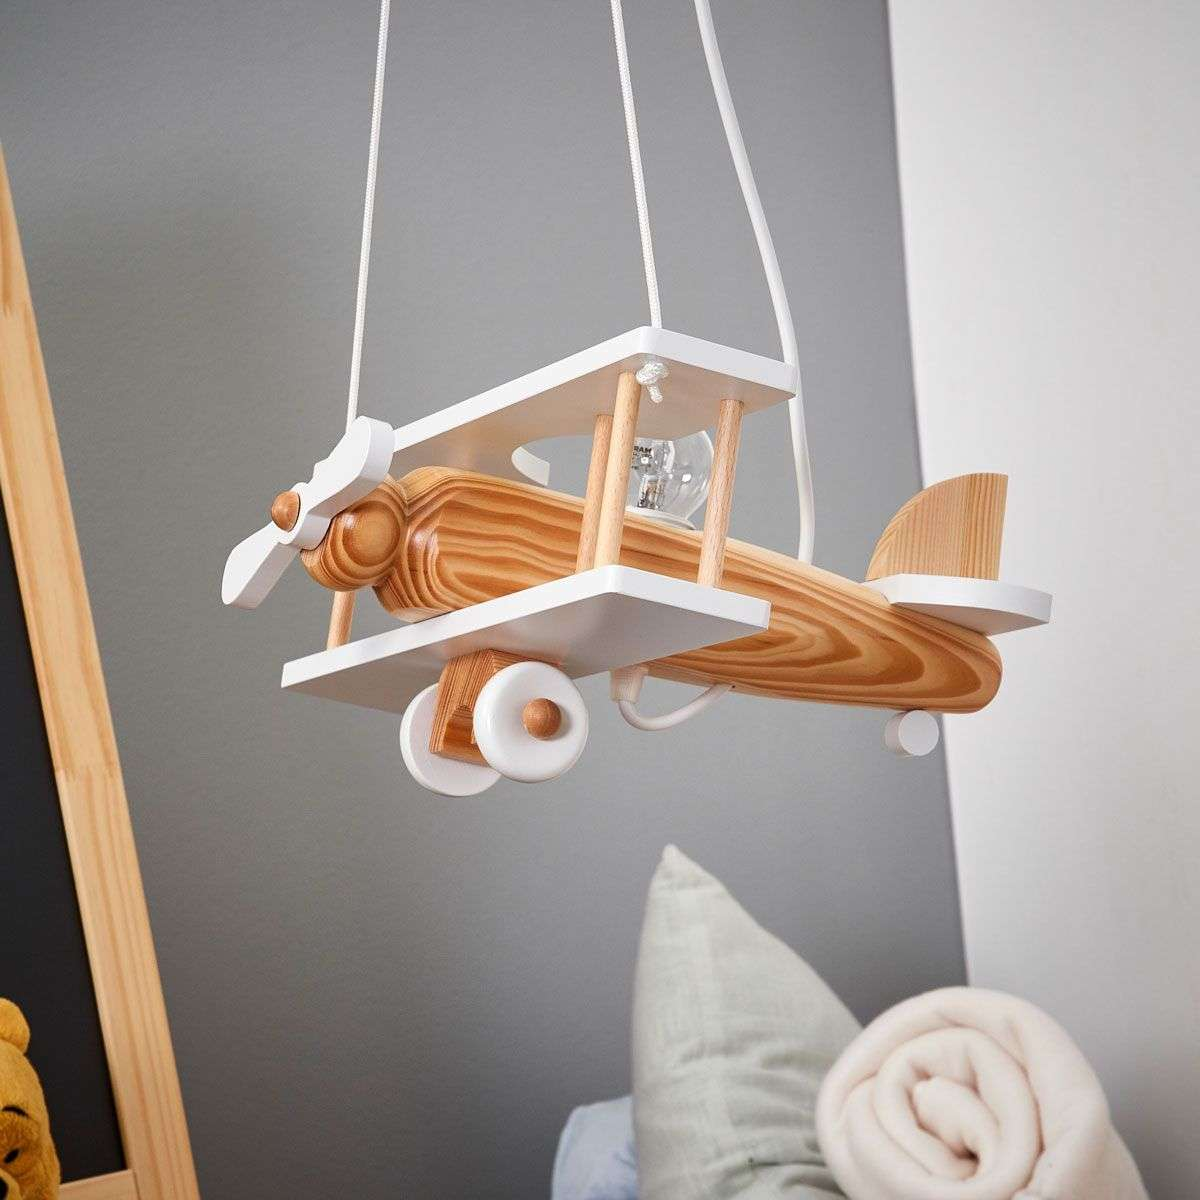 Suspension blanche avion en l ments de bois - Suspension blanche chambre ...